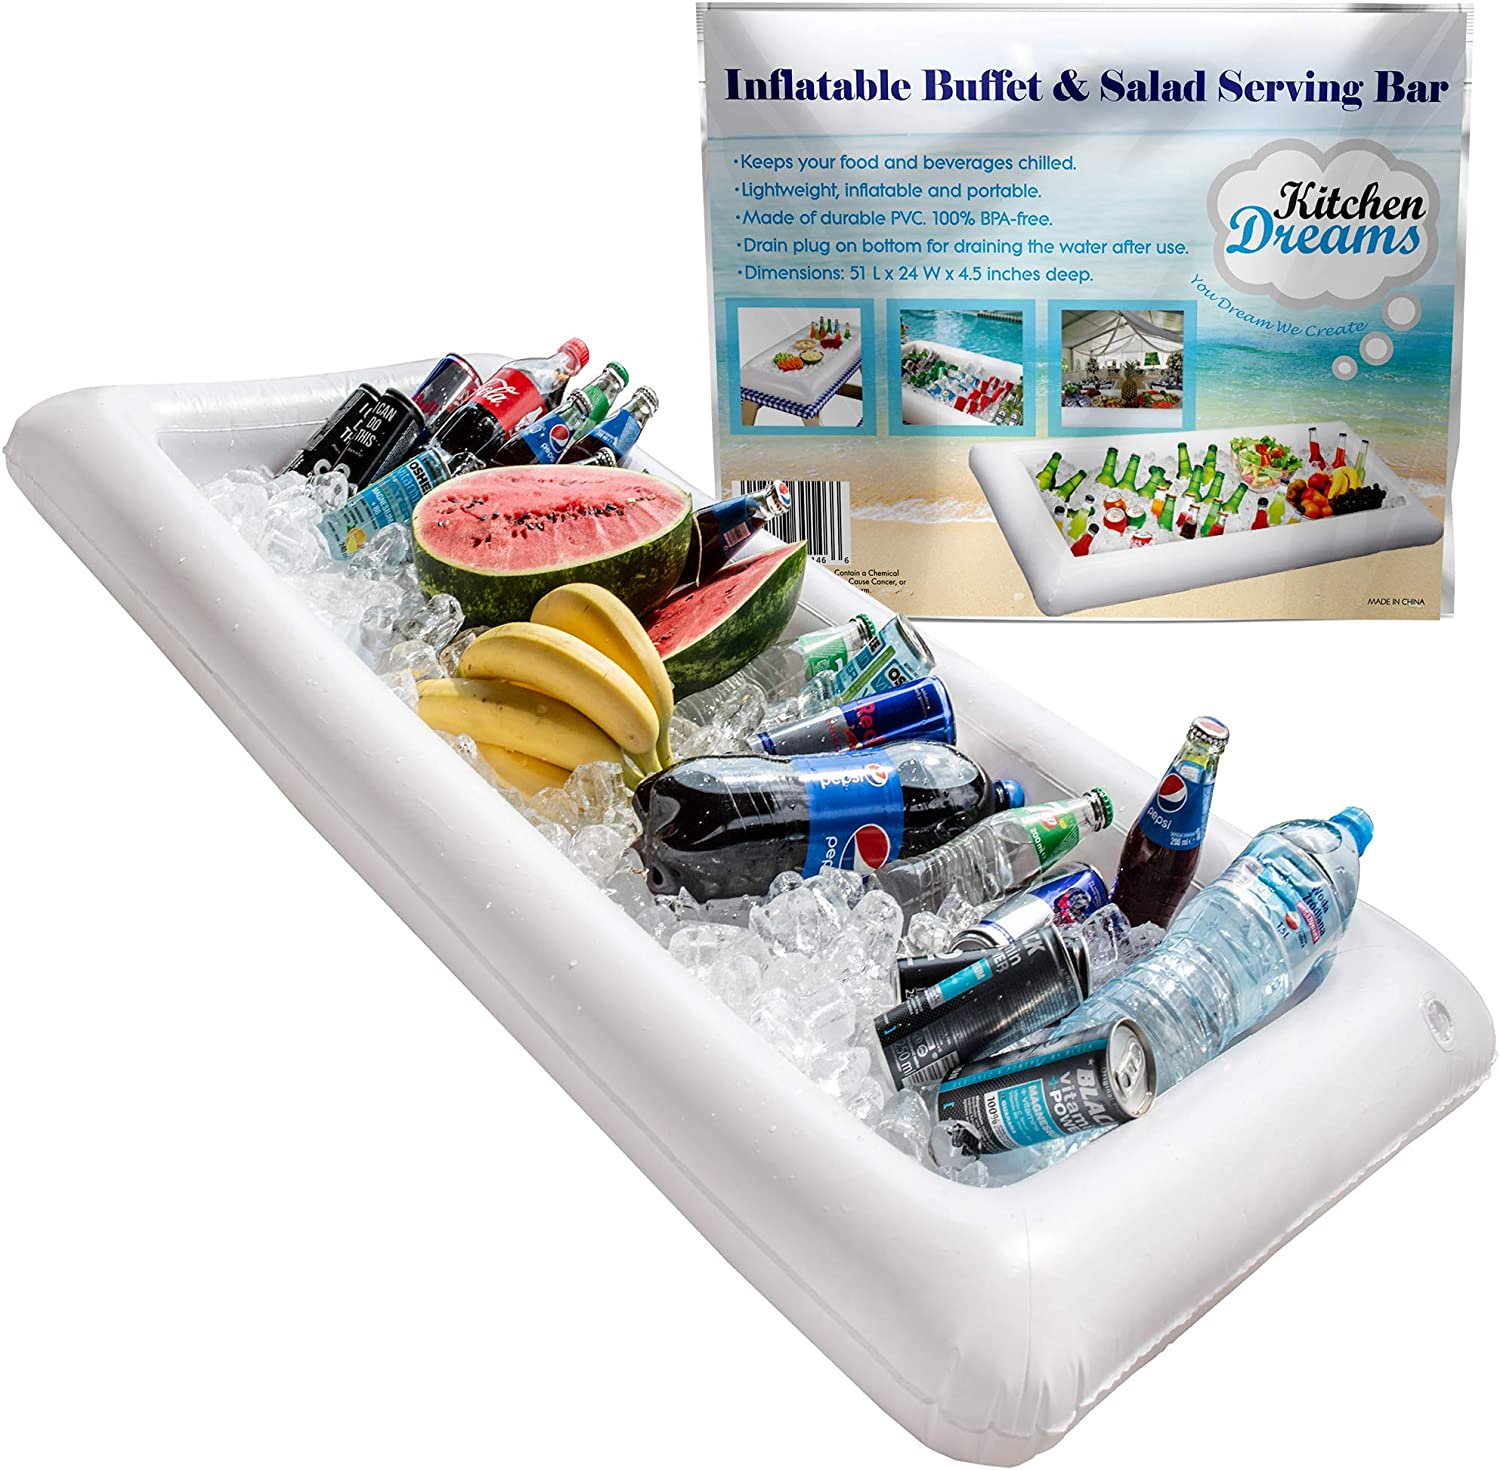 Inflatable Pool Table Serving Bar - Large Buffet Tray Server With Drain Plug - Keep Your Salads & Beverages Ice Cold - For Parties Indor & Outdoor use Bar Party Accessories - Kitchen Dreamers